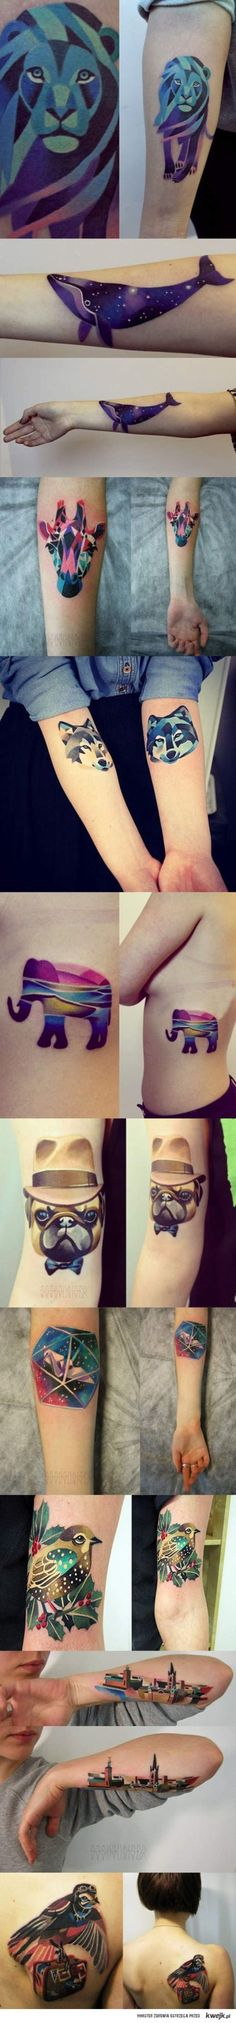 really cool geometric tattoos. Artist - Sasha Unisex. Follow her art on Instagram! -- cool, i'd never get but cool